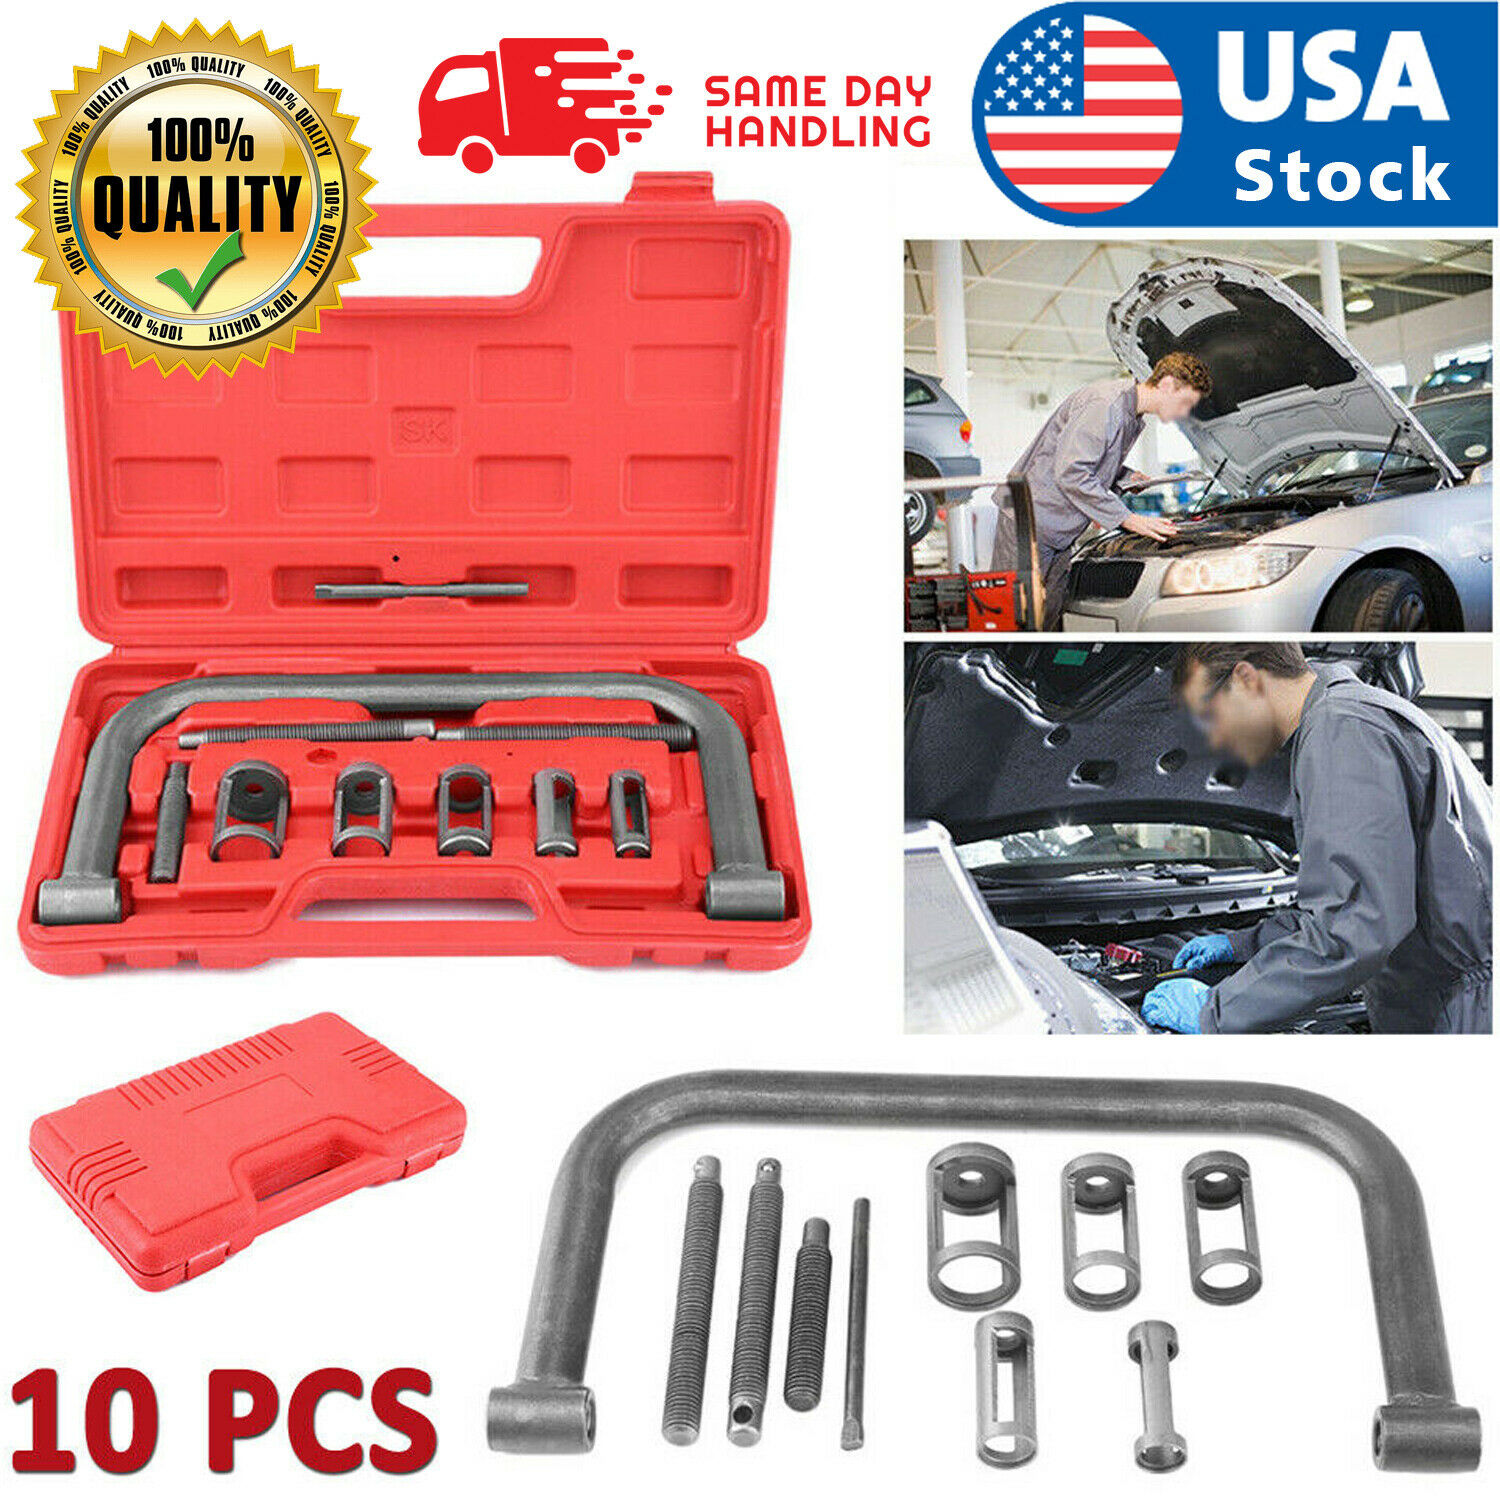 5 Sizes Valve Spring Compressor Pusher Automotive Tool For Car Motorcycle Kit Automotive Tools & Supplies